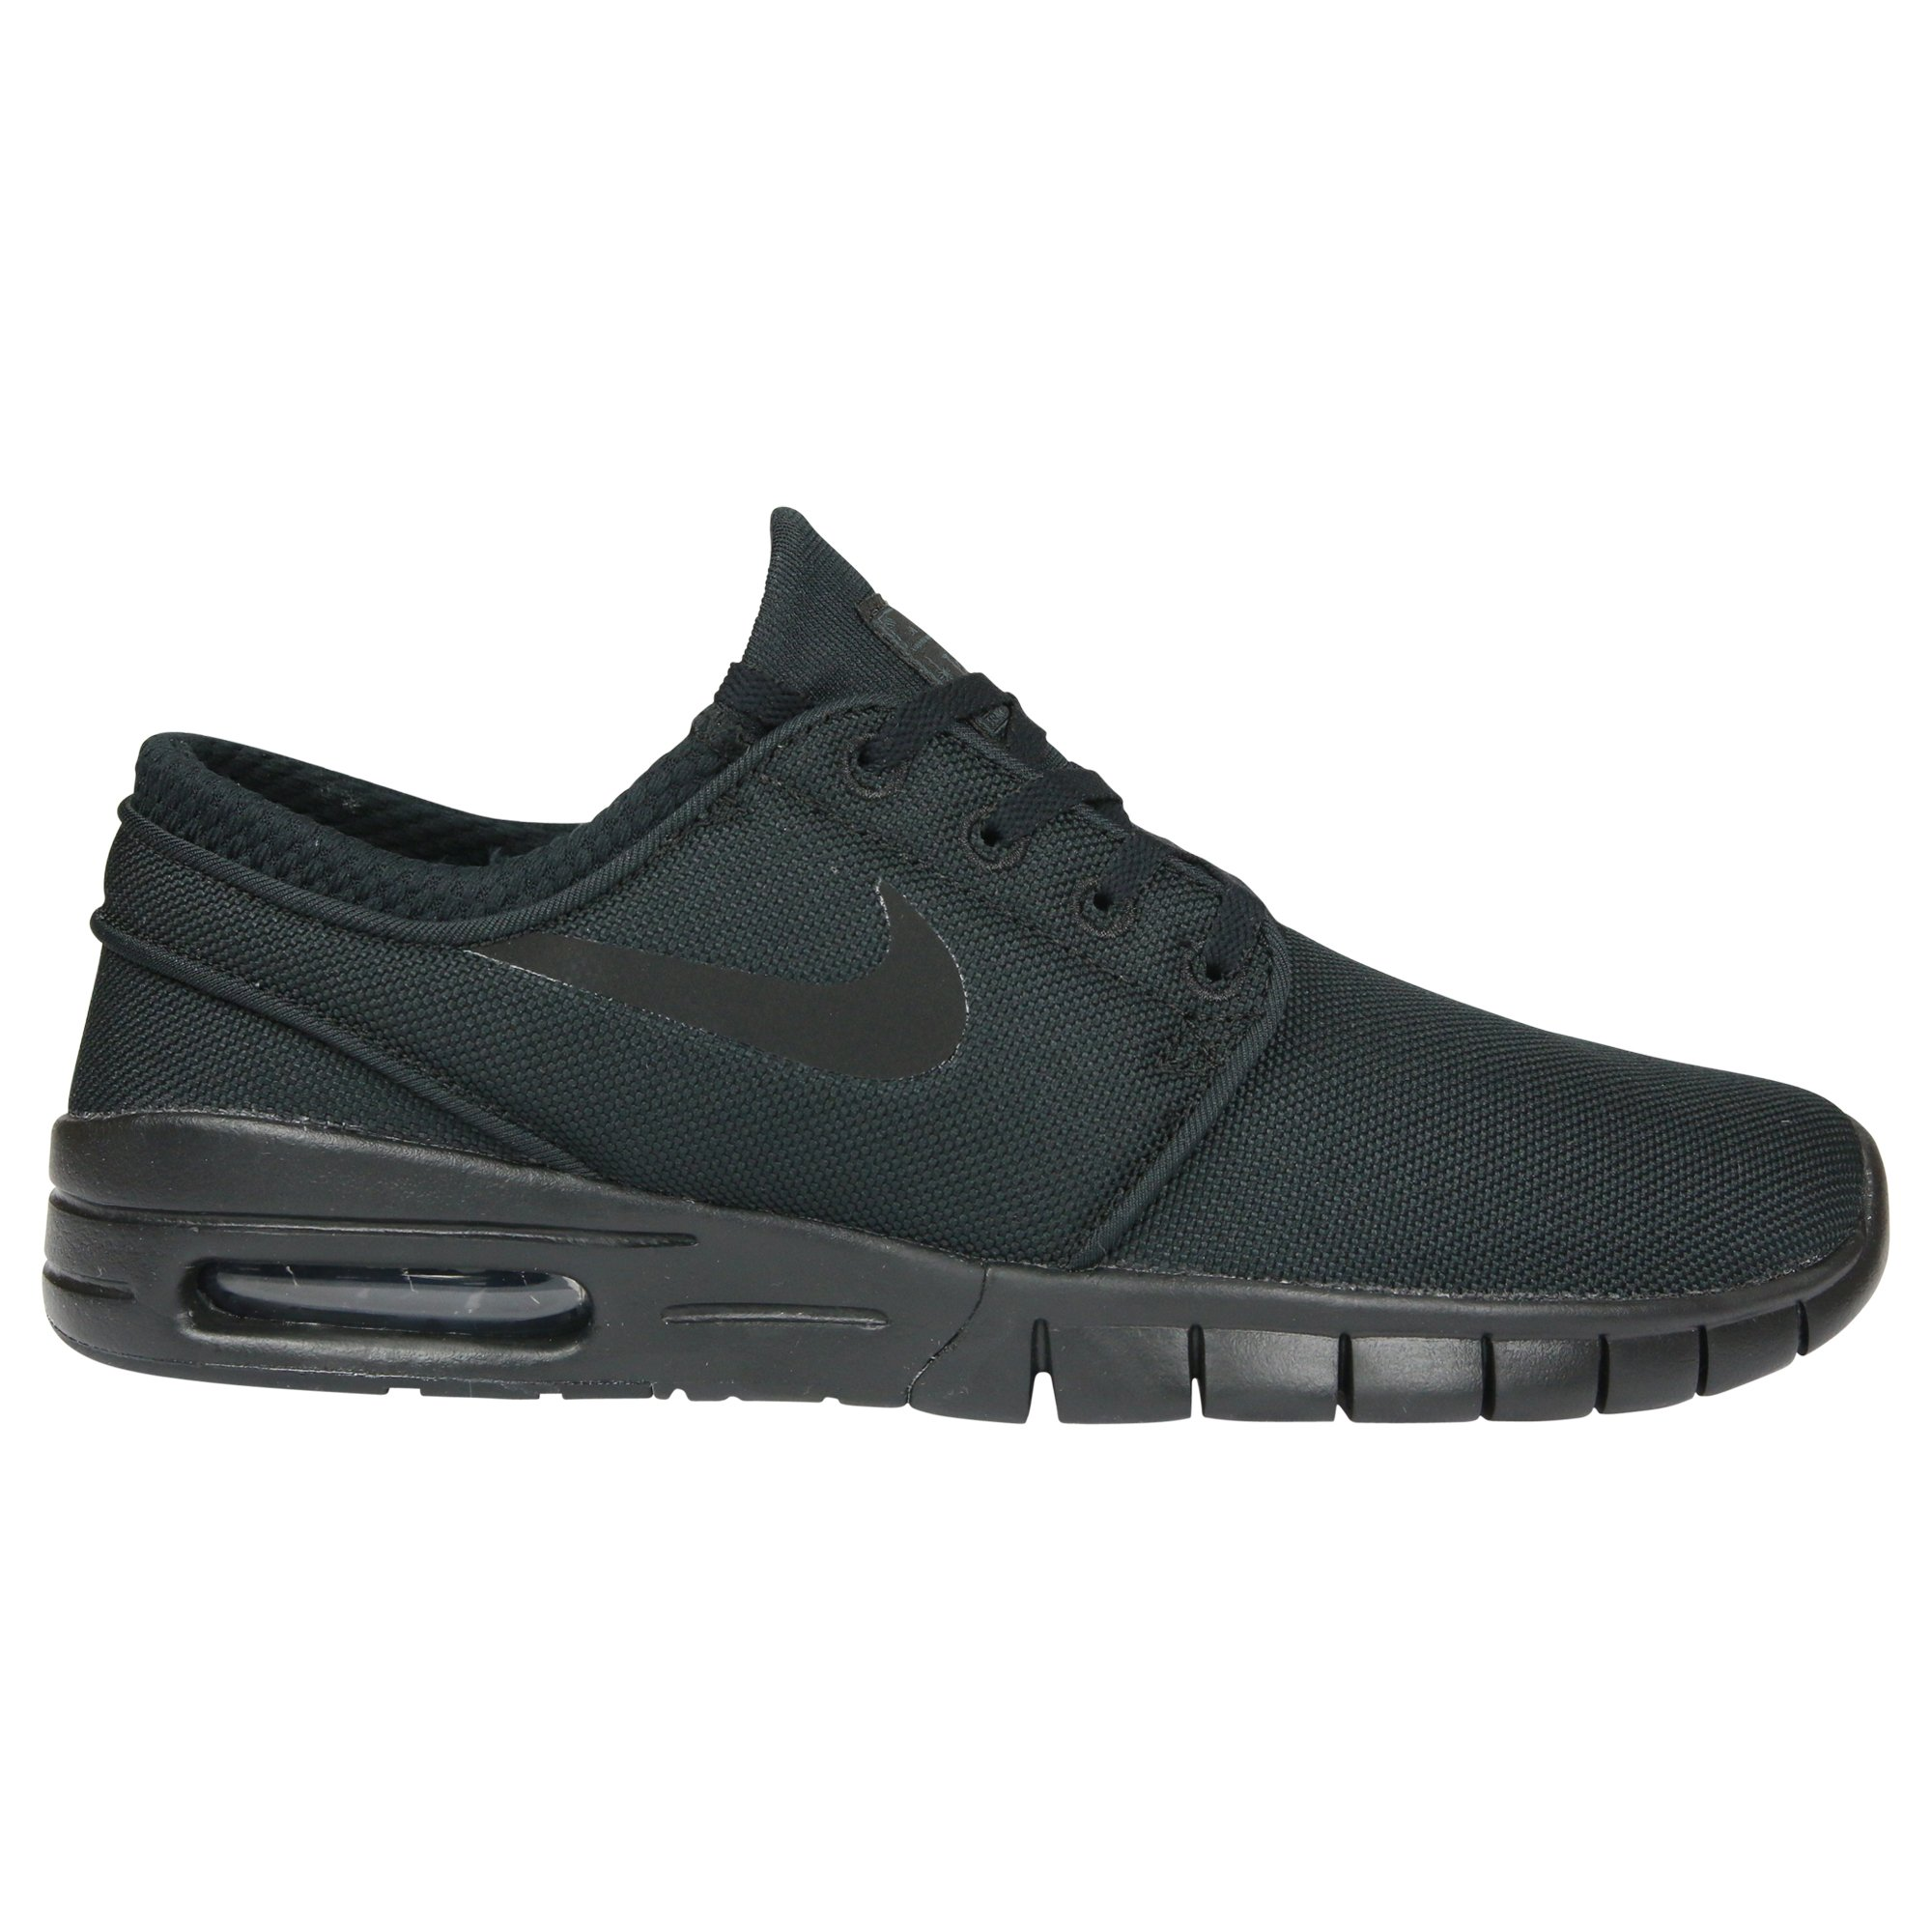 super popular 3dca0 19f94 Galleon - Nike Men s Stefan Janoski Max Black Black Anthracite BlackSneakers  - 6.5 D(M) US